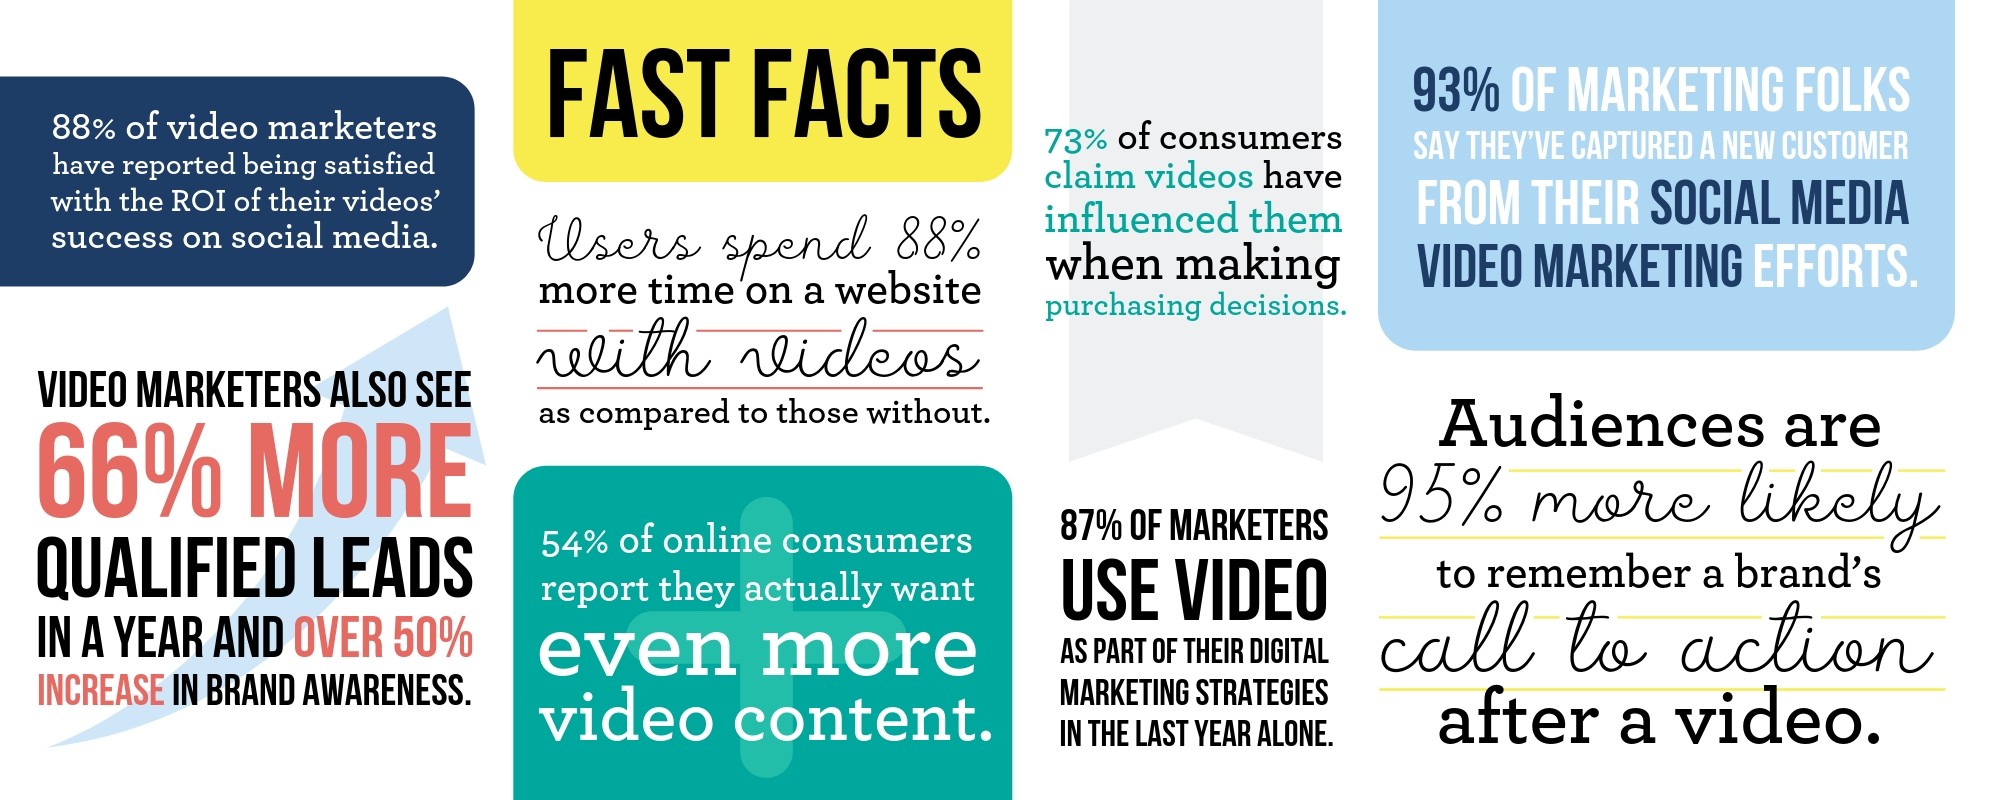 Video Marketing Facts 2019